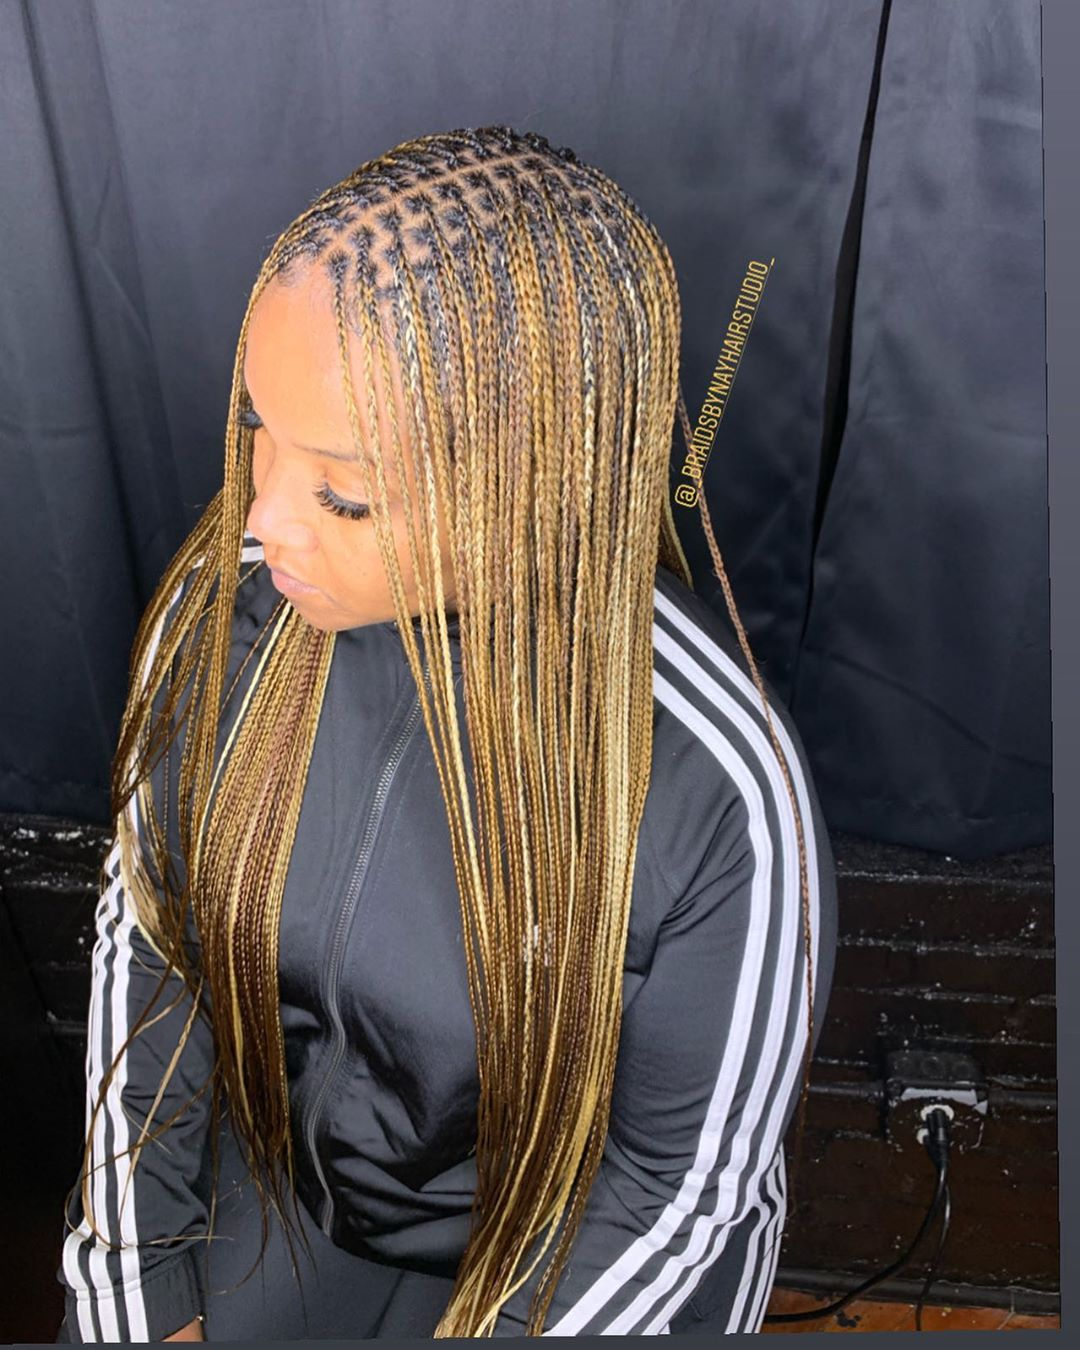 29 Trendy Black And Blonde Small Box Braids To Copy In 2020 Styleuki Check out our blonde knotless braid selection for the very best in unique or custom, handmade pieces from our shops. 29 trendy black and blonde small box